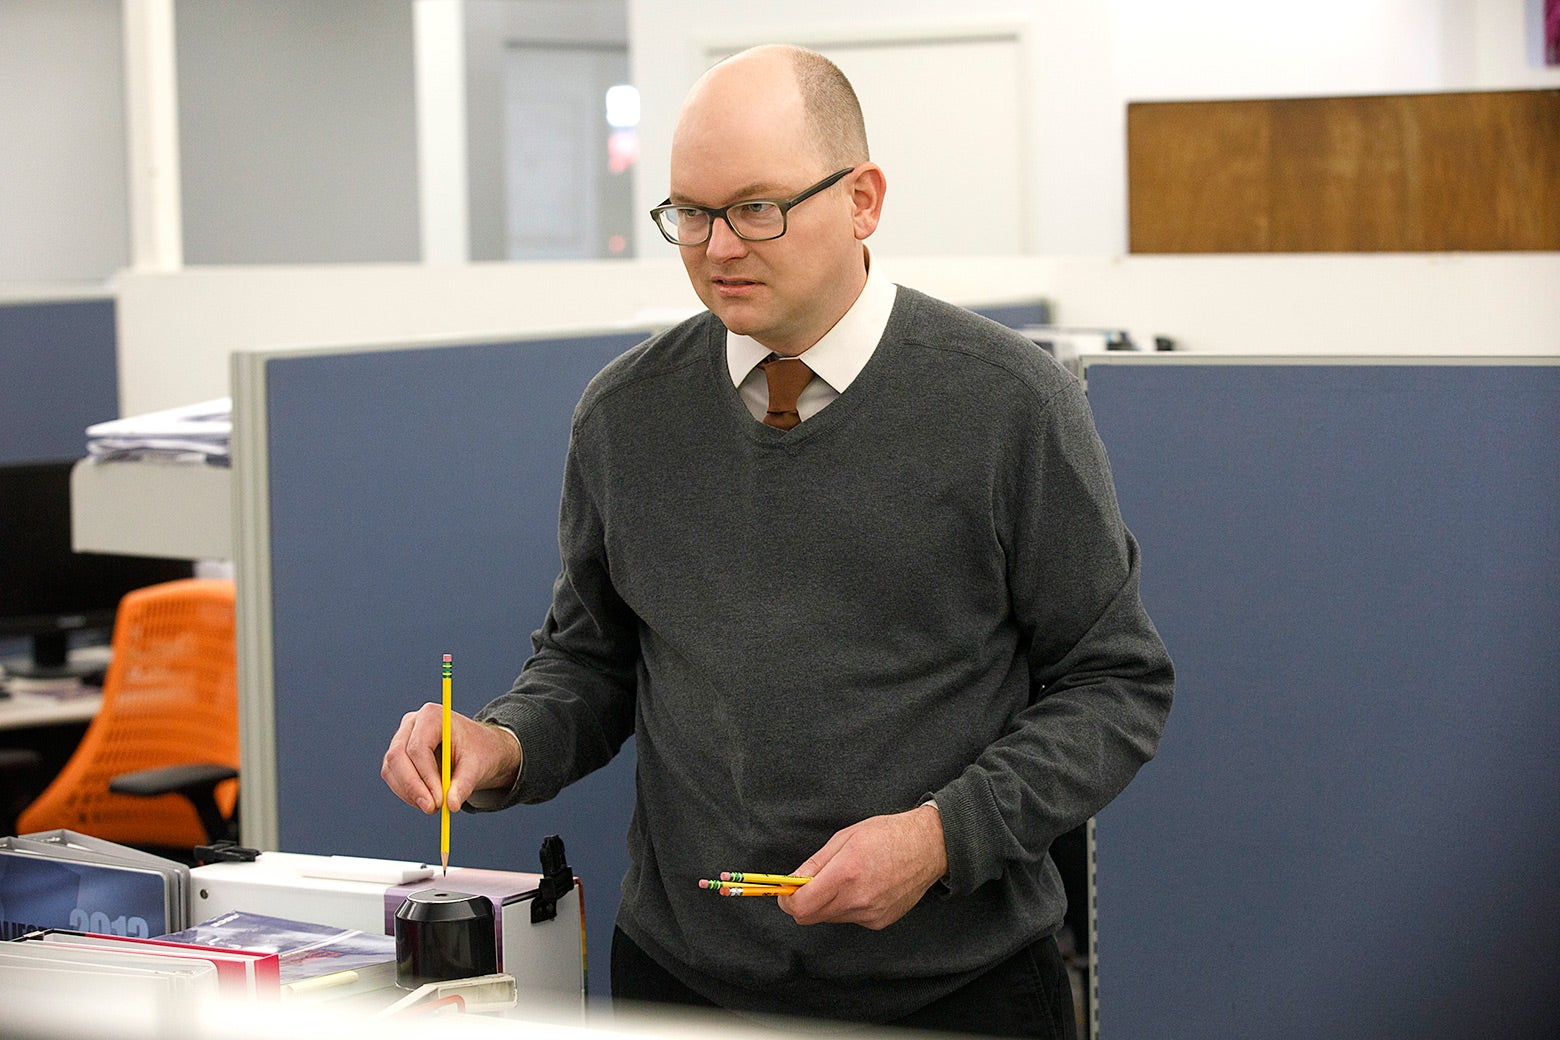 Mark Proksch as Colin Robinson, who is about to sharpen a pencil in this still from What We Do in the Shadows.